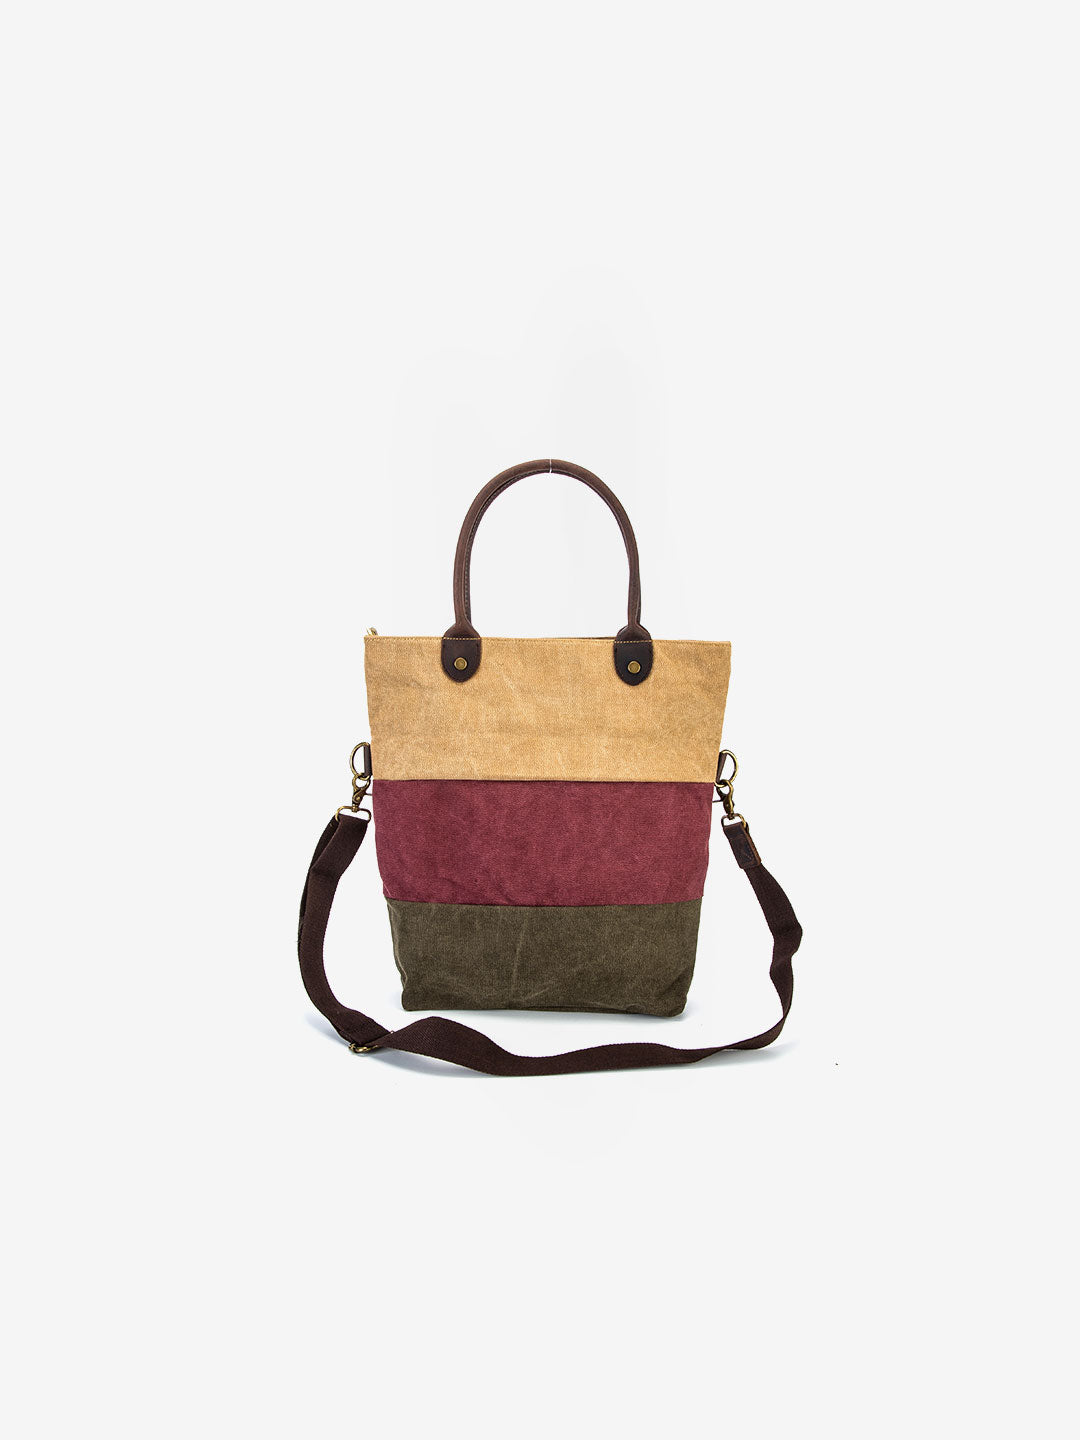 The Tribeca Tote in Cinnamon